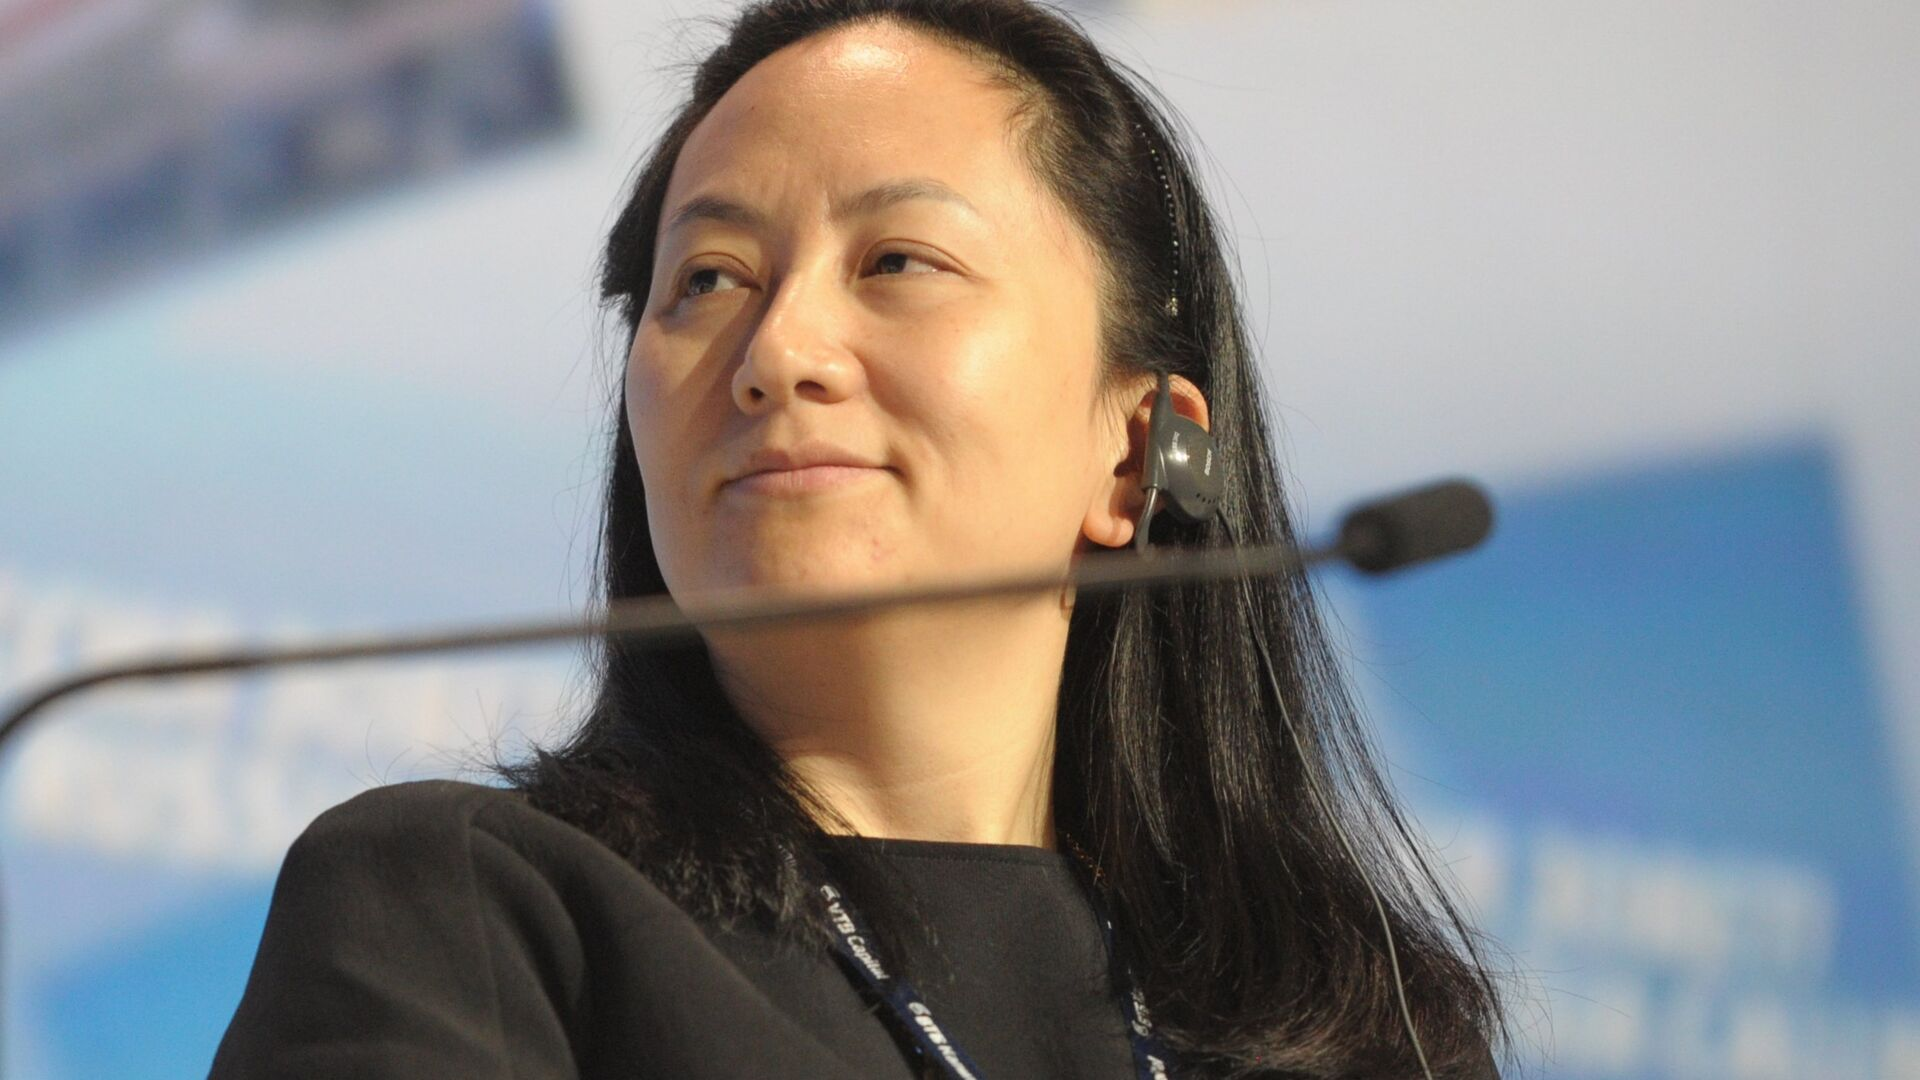 Meng Wanzhou, Chief Executive Officer, Huawei Technologies, attending the 6th Annual VTB Capital Investment Forum Russia Calling at the World Trade Center, October 2, 2014 - Sputnik Polska, 1920, 25.09.2021